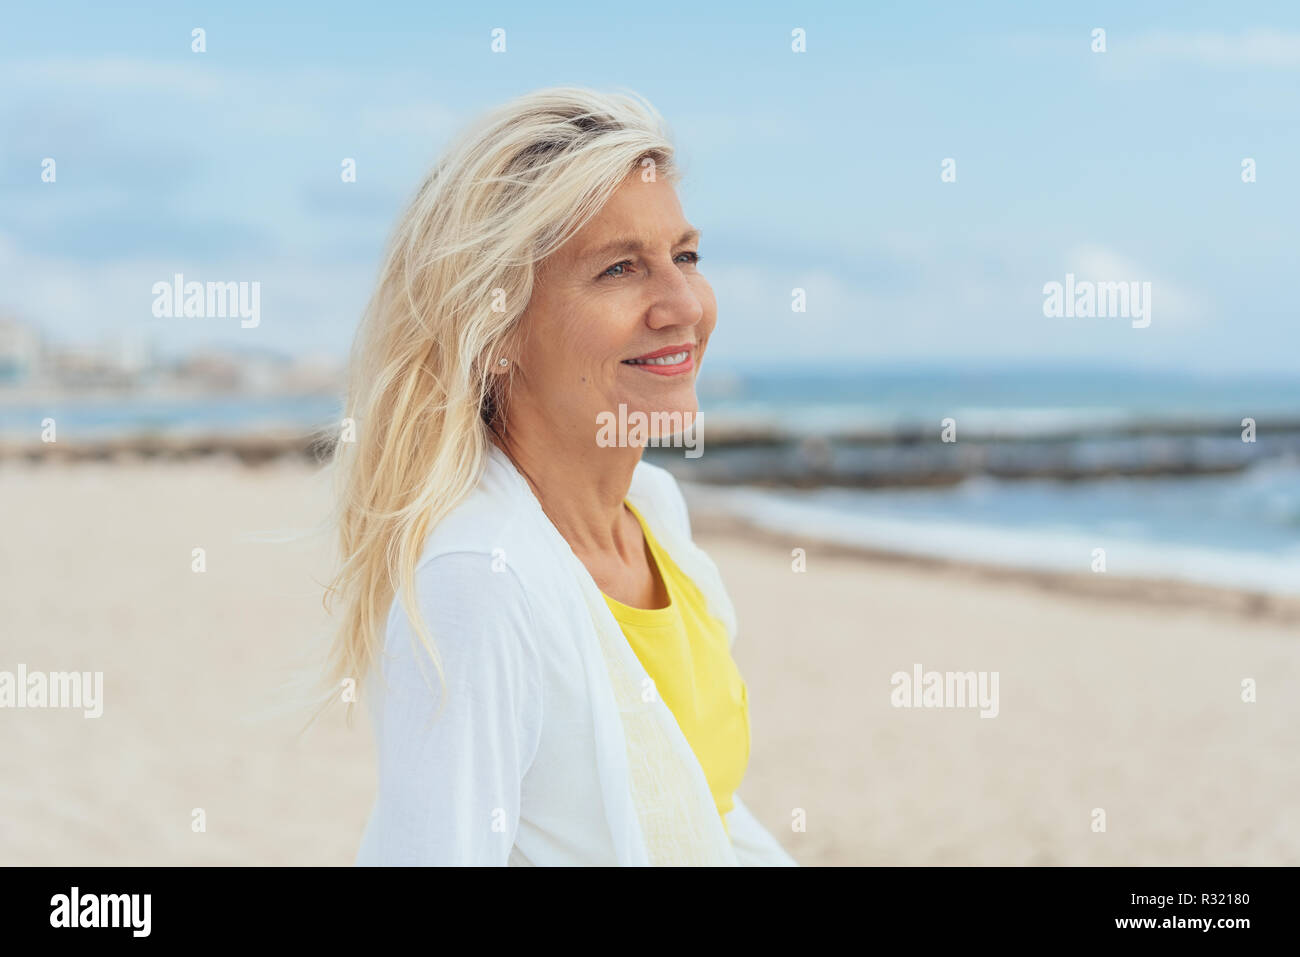 Happy vivacious blond woman with tousled hair standing on a windswept tropical beach looking out over the ocean - Stock Image